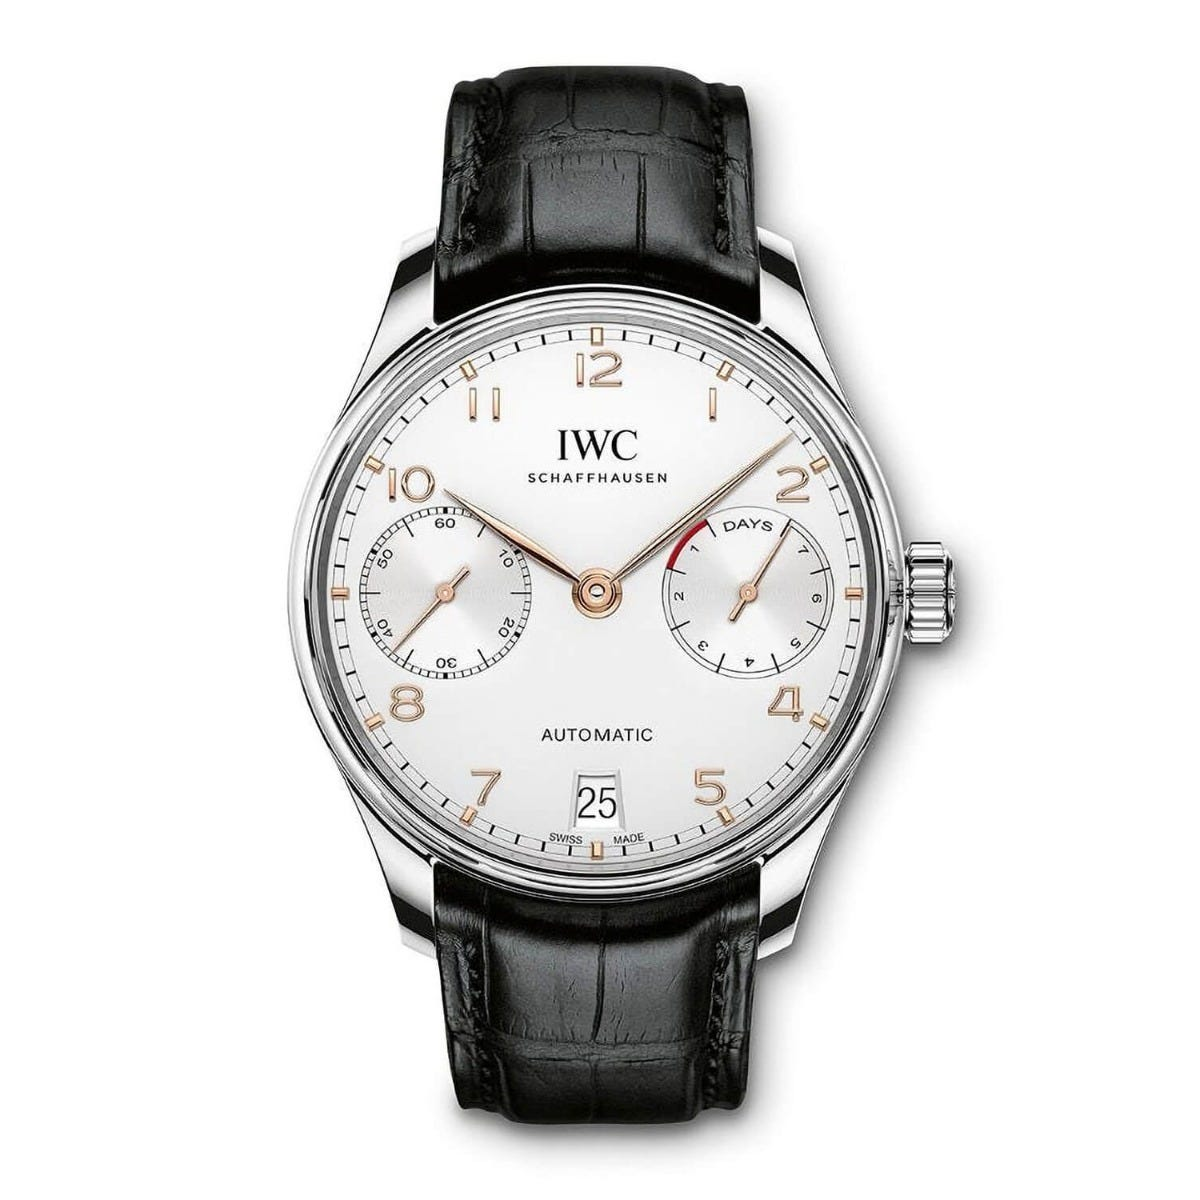 IWC Portugieser Automatic 7 Days' Power Reserve men's white dial black leather strap watch